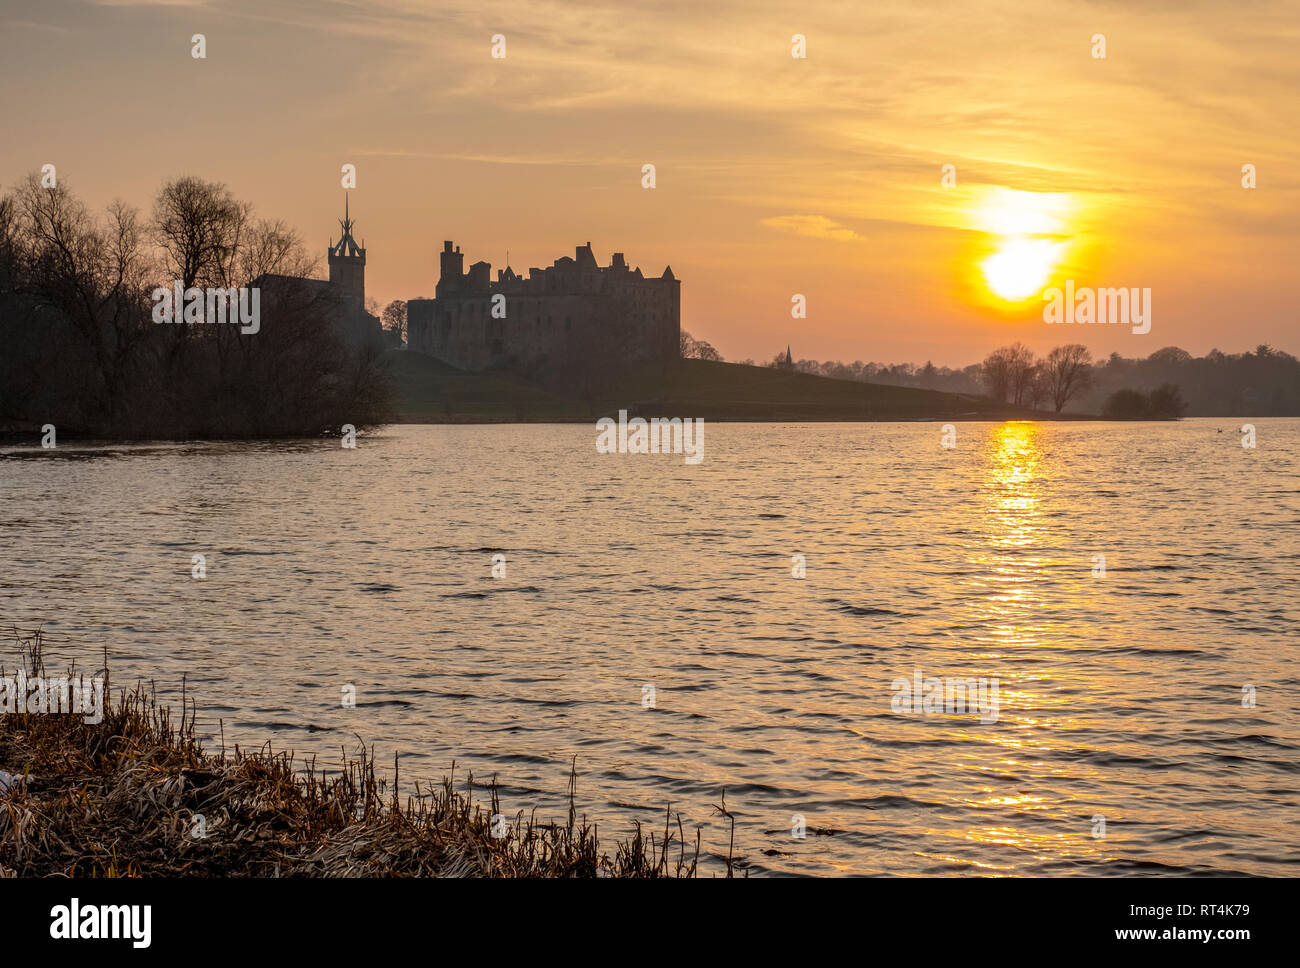 Sunset over Linlithgow Loch and  Linlithgow Palace, West Lothian, birthplace of Mary Queen of Scots. - Stock Image